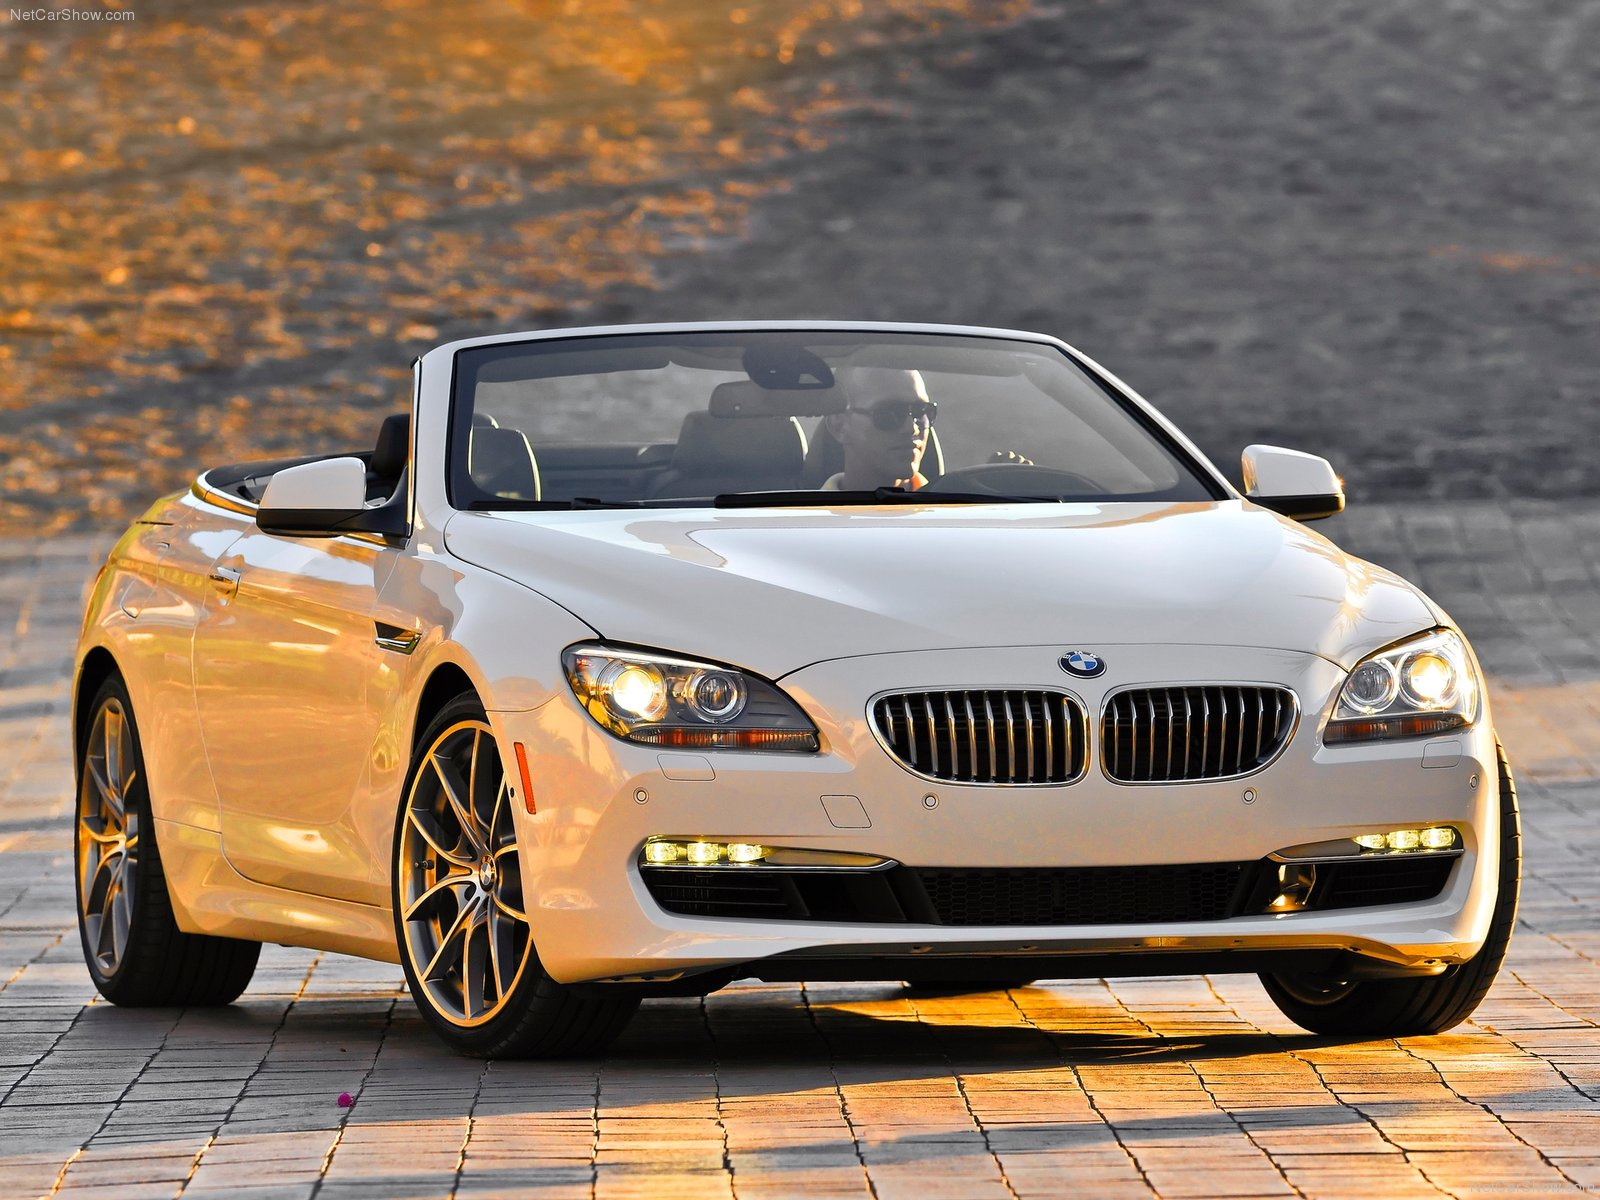 BMW 6 series F13 Convertible picture